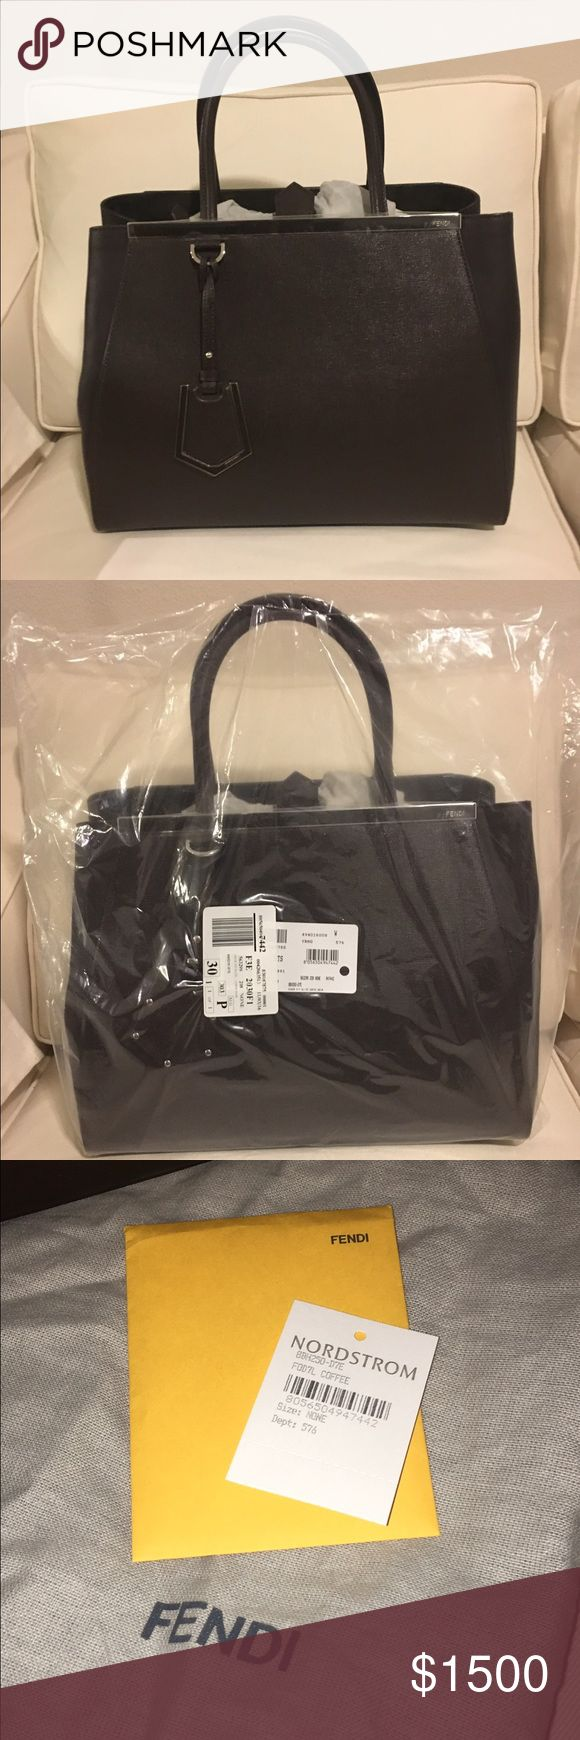 """Fendi 2jours Elite Leather Shopper Brand New with Tags. Purchased at Nordstrom.com. I thought it was black but unfortunately for me it's dark brown. Color is called Coffee Noir.    Silver Hardware, detachable shoulder strap.   15""""W x 11""""H x 6""""D. (Interior capacity: large.) 5"""" strap drop; 13 ½"""" shoulder strap drop. 2.7 lbs.  Purchased from Nordstrom.com                     NO TRADES Fendi Bags Satchels"""